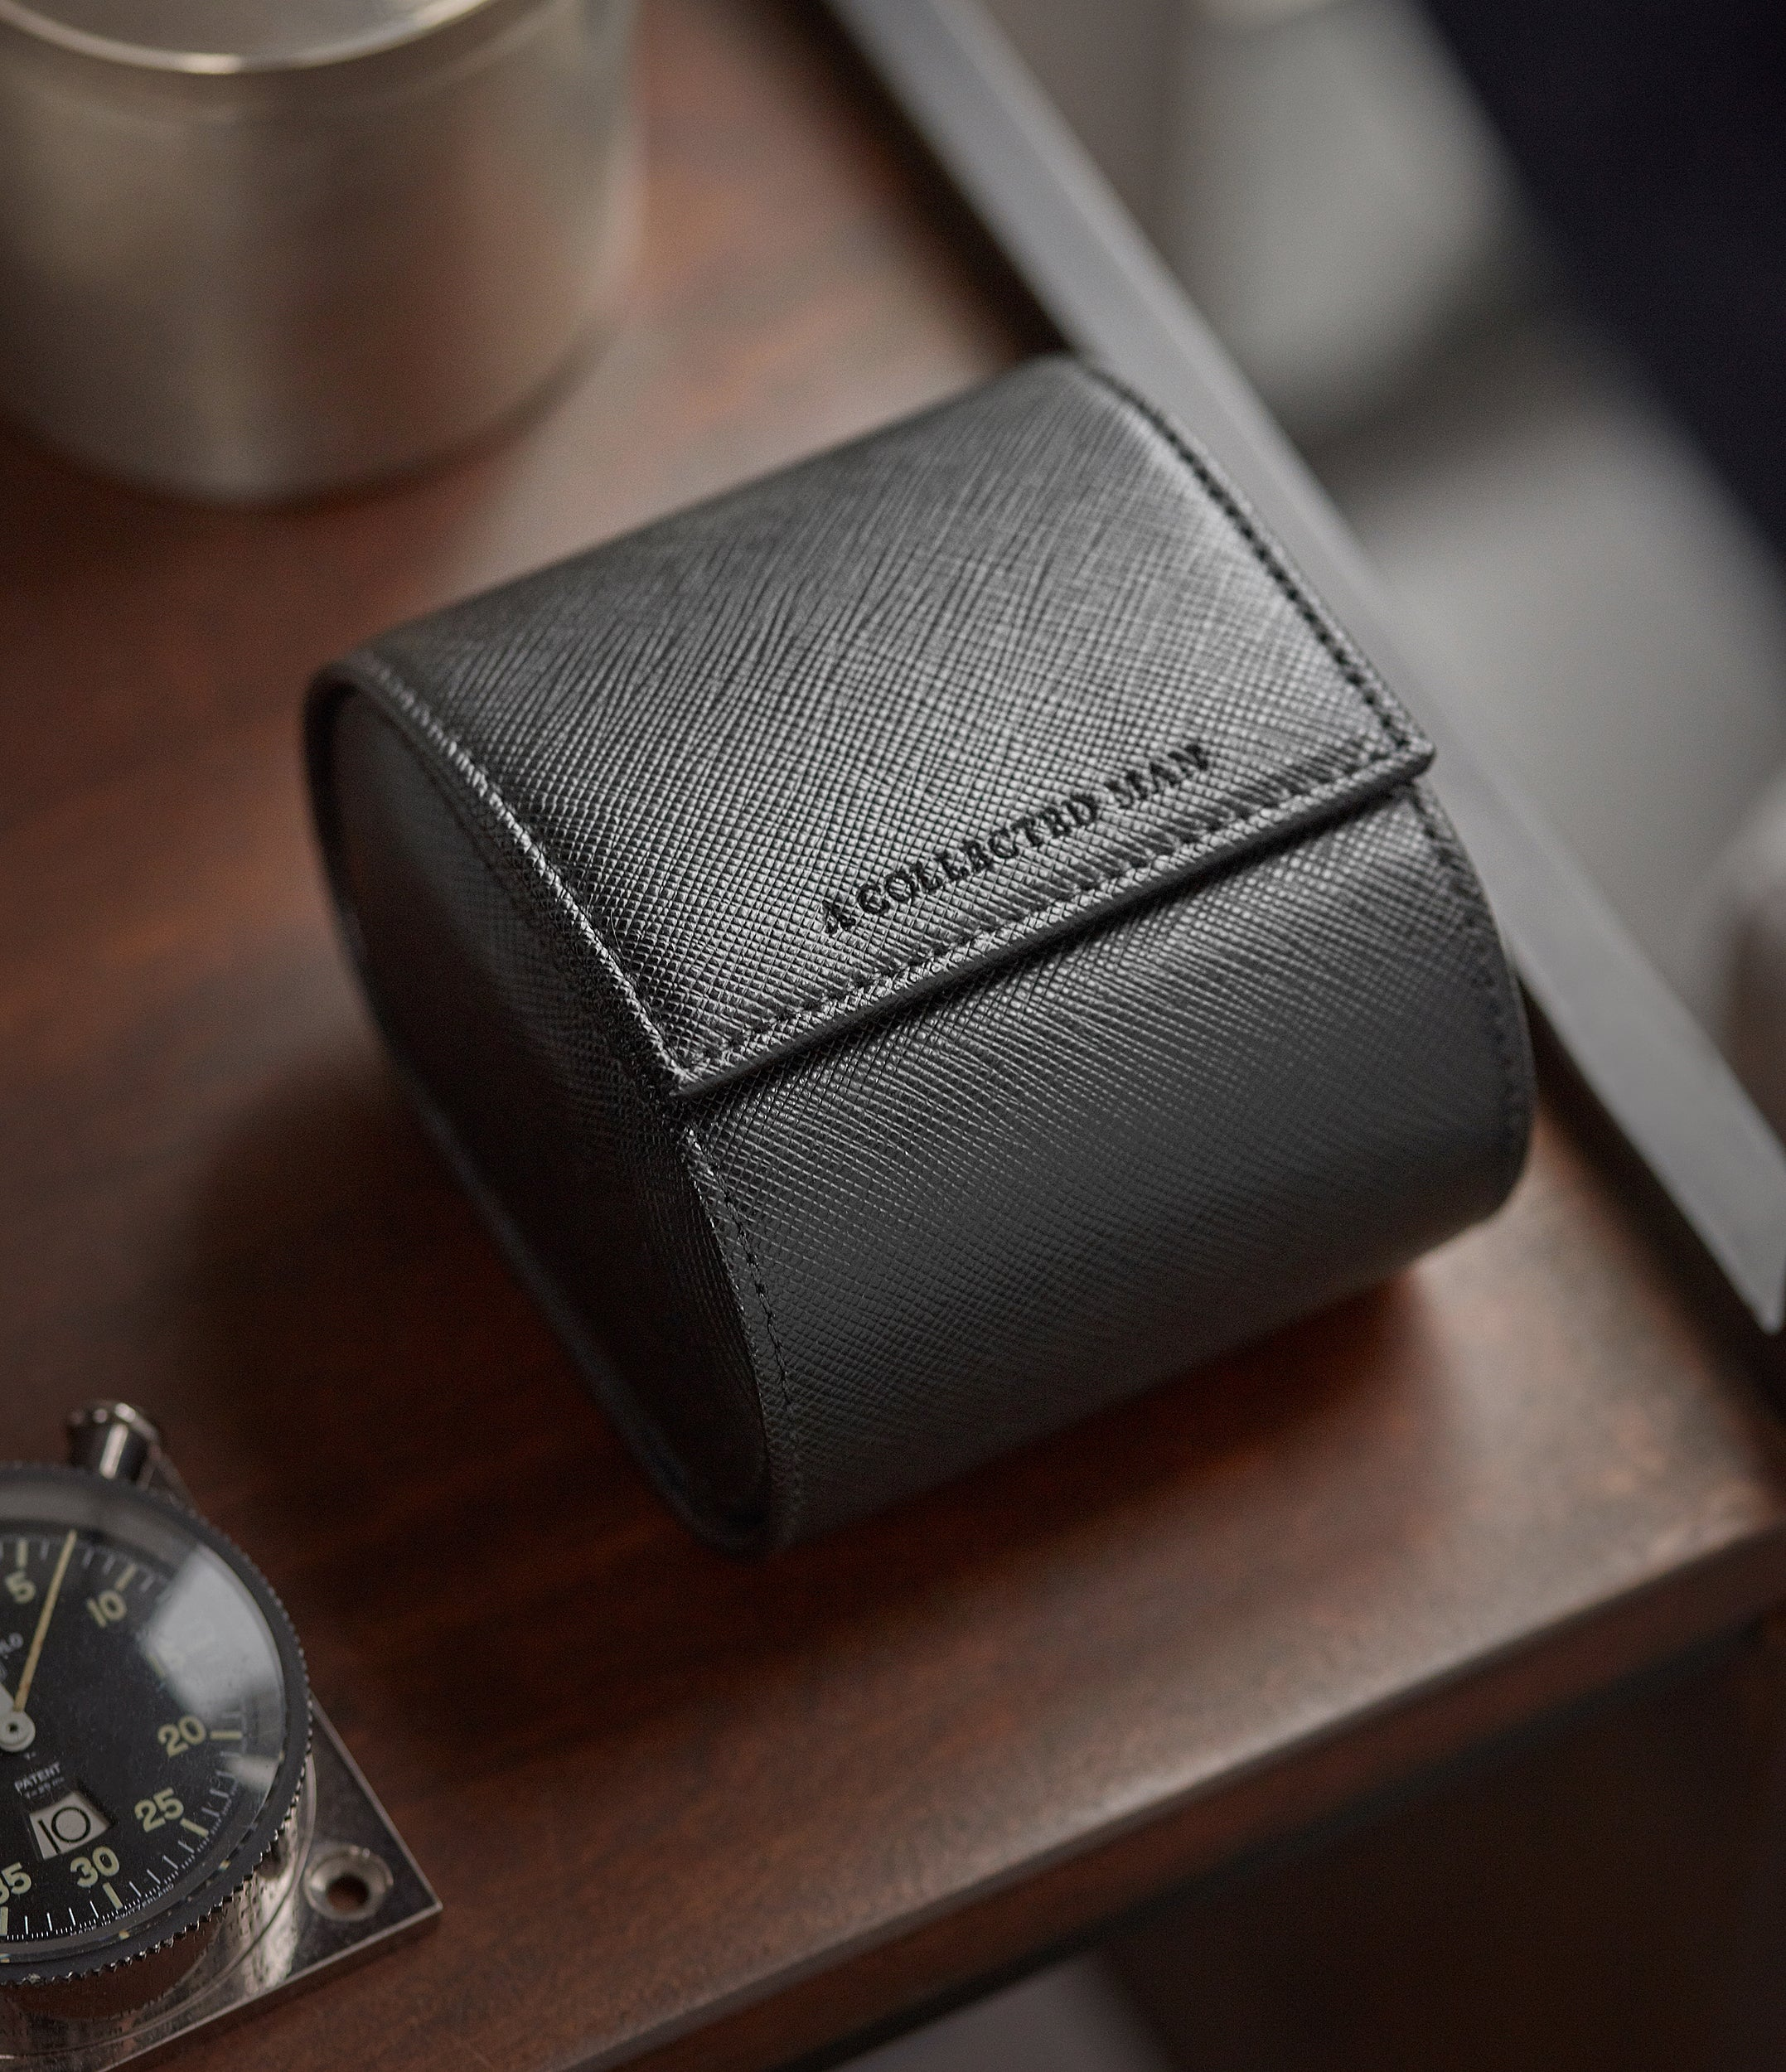 classic modern gentlemen's with holder black Saffiano one-watch single watch roll leather holder box Milano travel case order online A Collected Man London